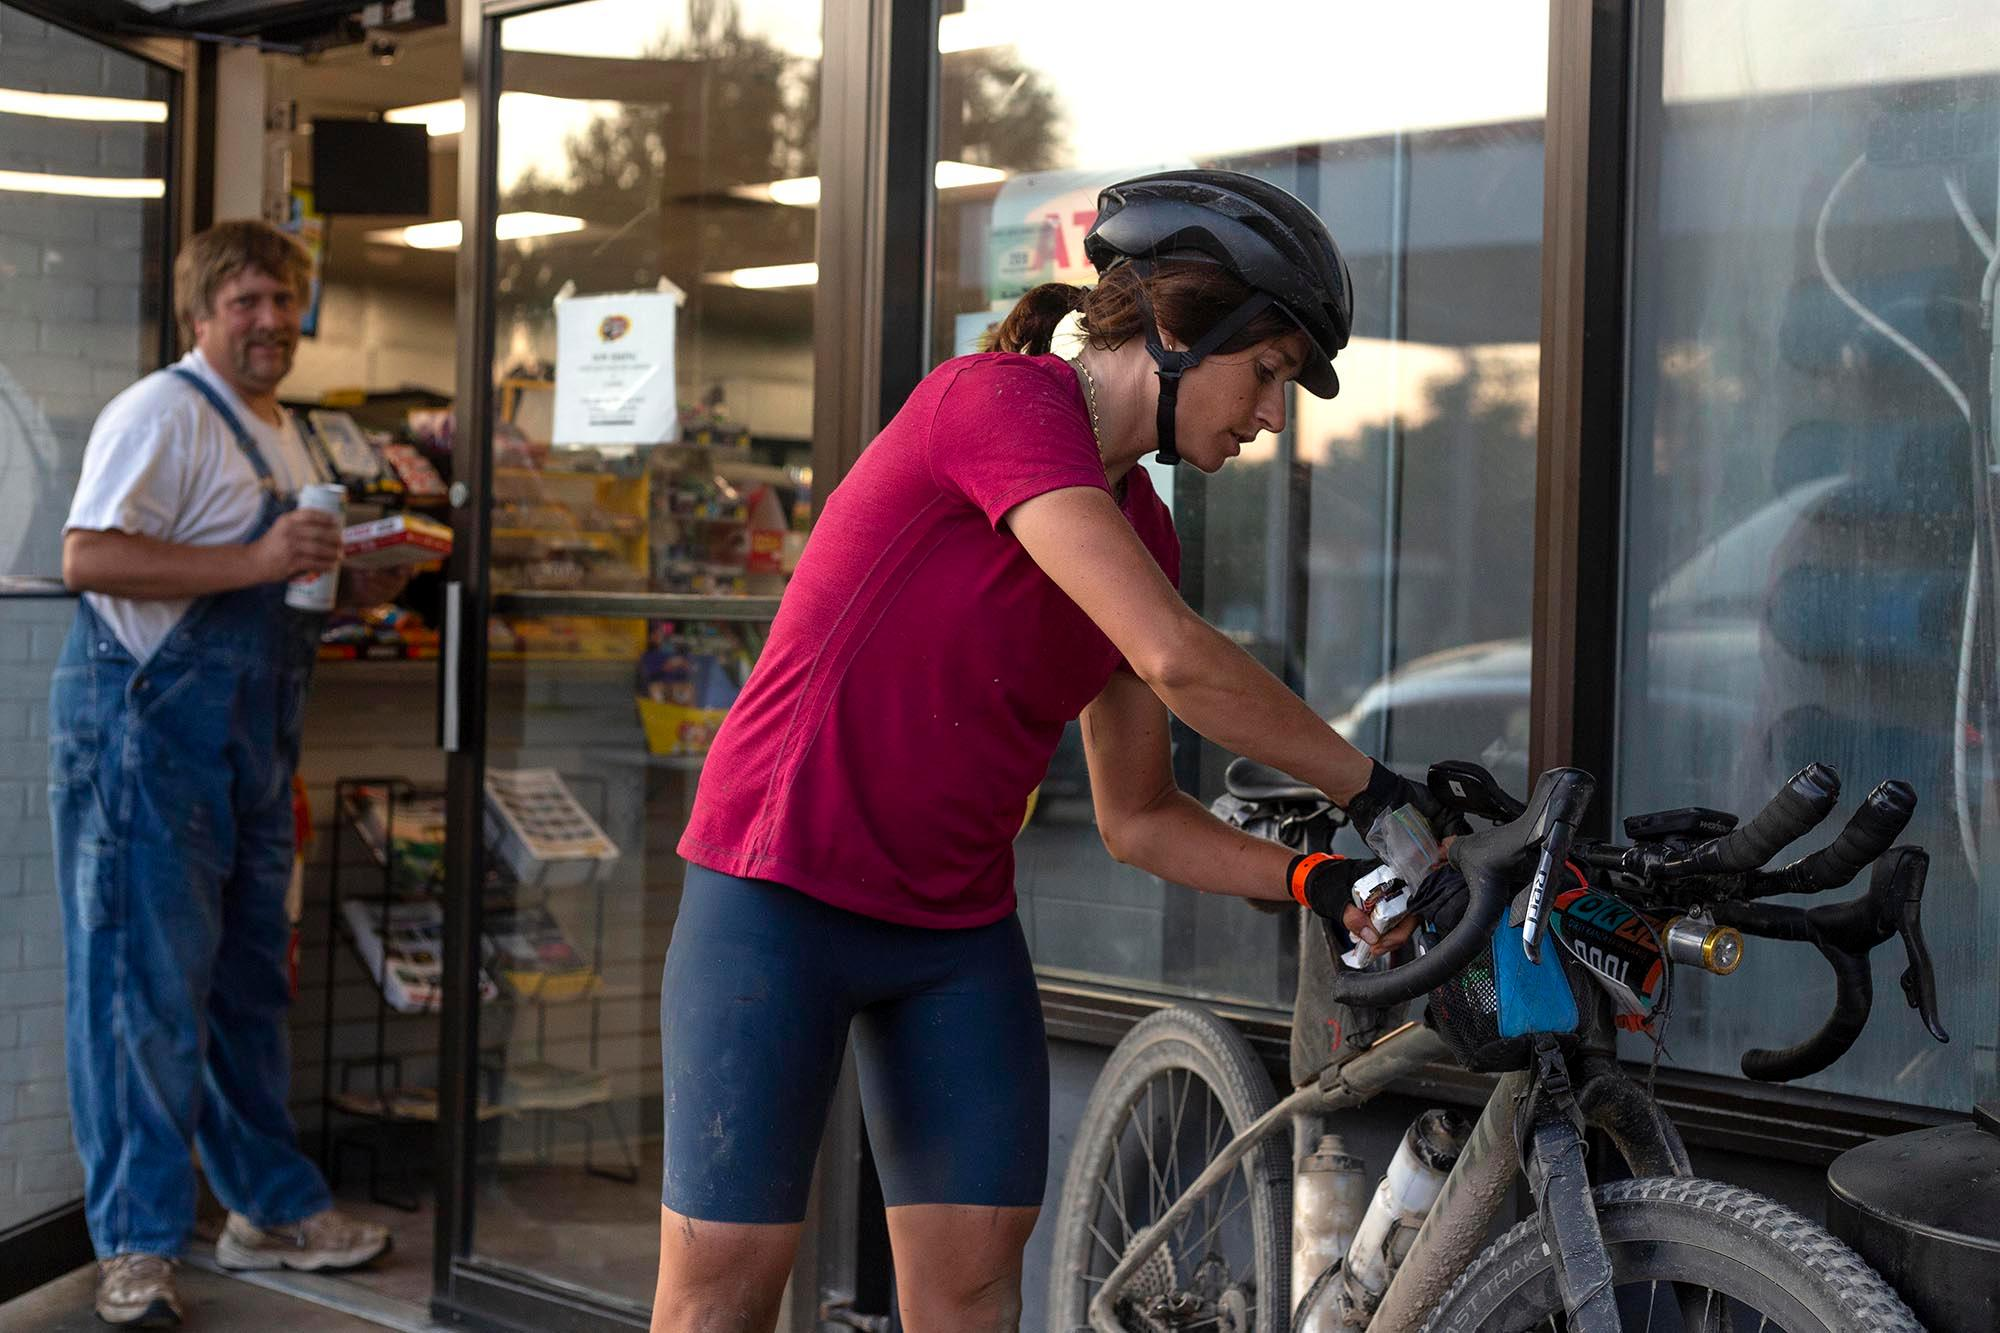 Lael Wilcox packs her bike with food during the DKXL 2019. (Rugile Kaladyte)